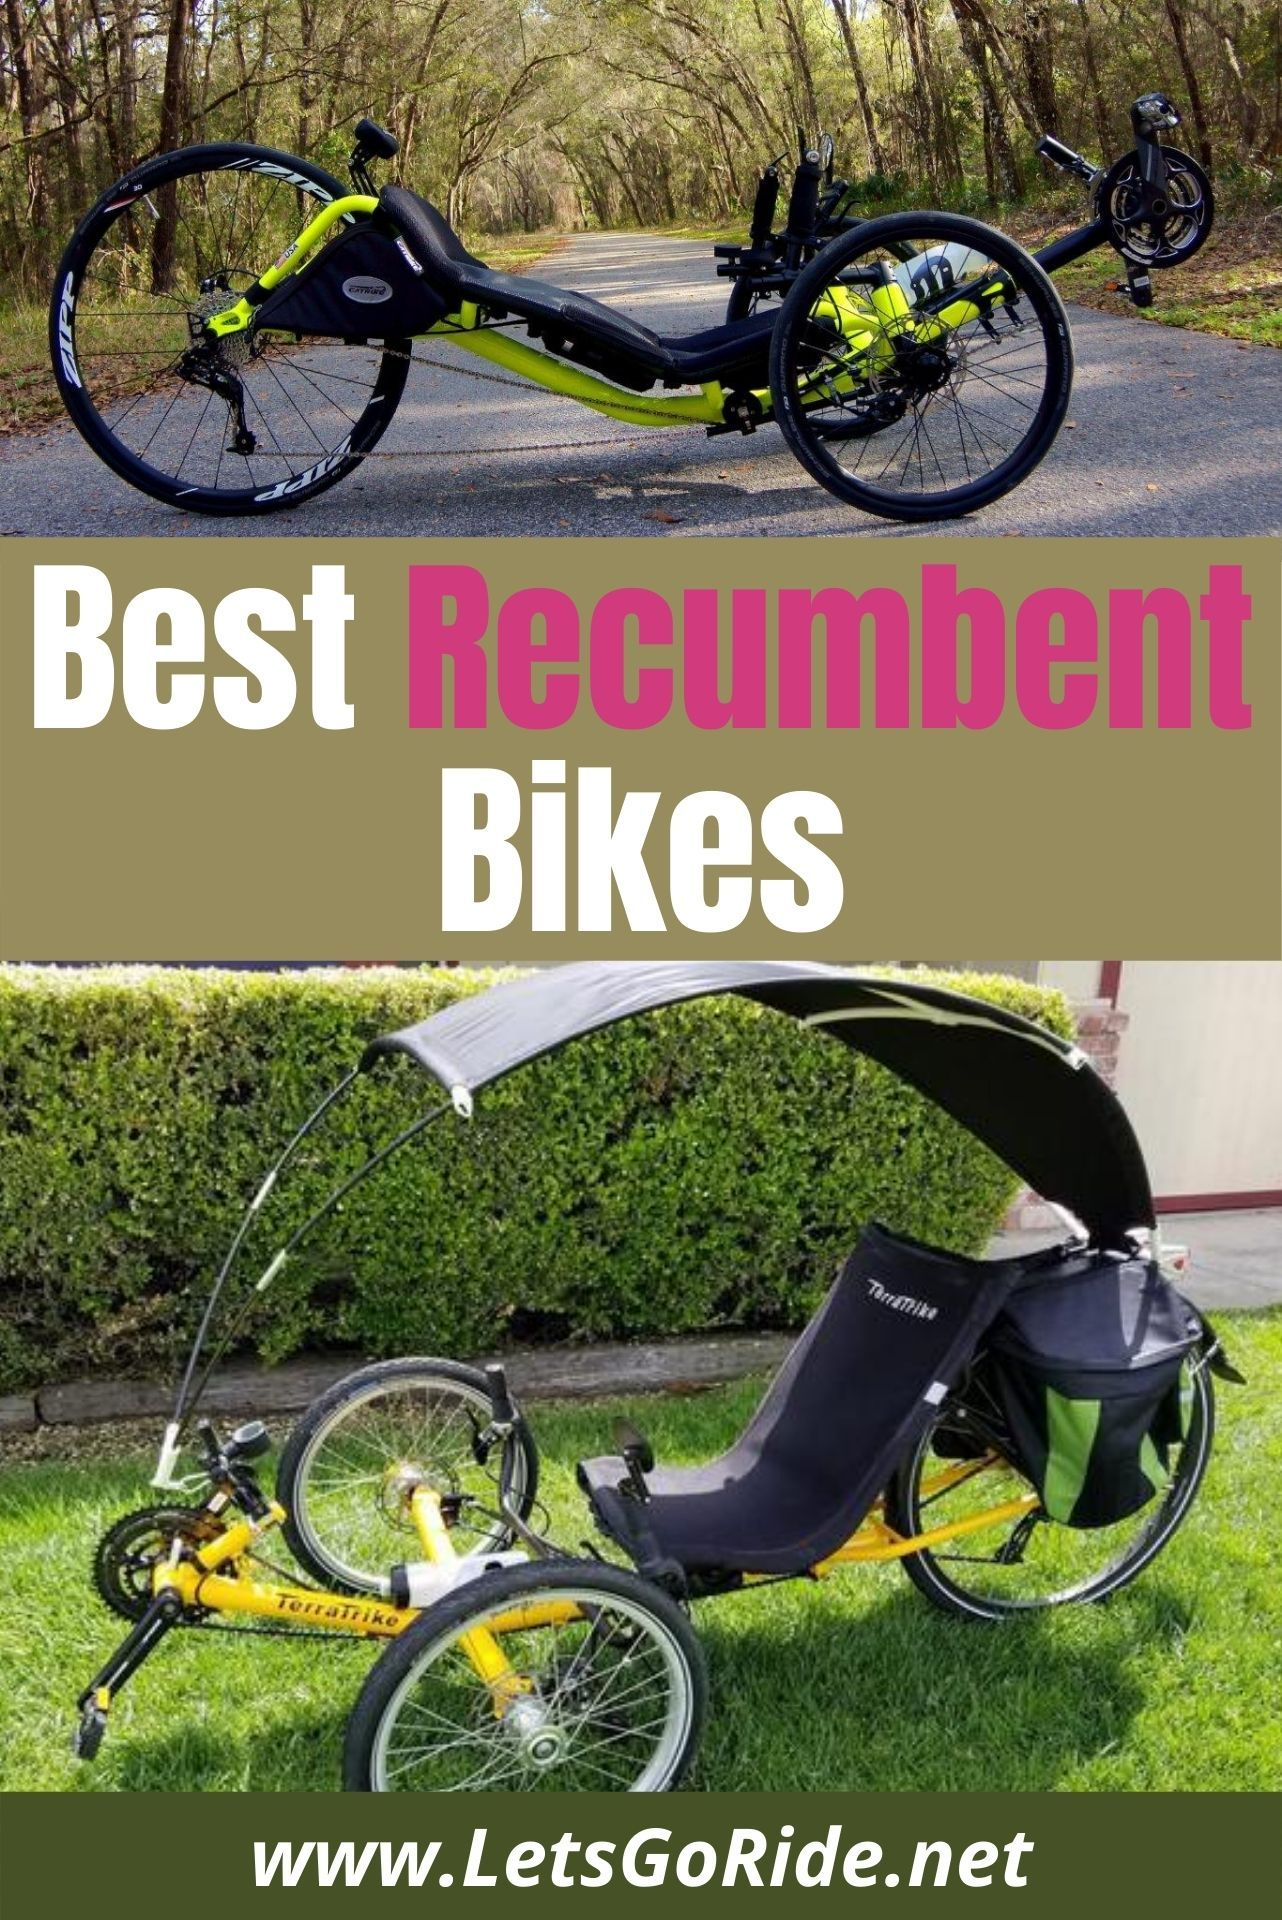 5 Best Recumbent Exercise Bikes Reviews Start Cycling To Stay Fit In 2020 Exercise Bike Reviews Recumbent Bike Workout Biking Workout